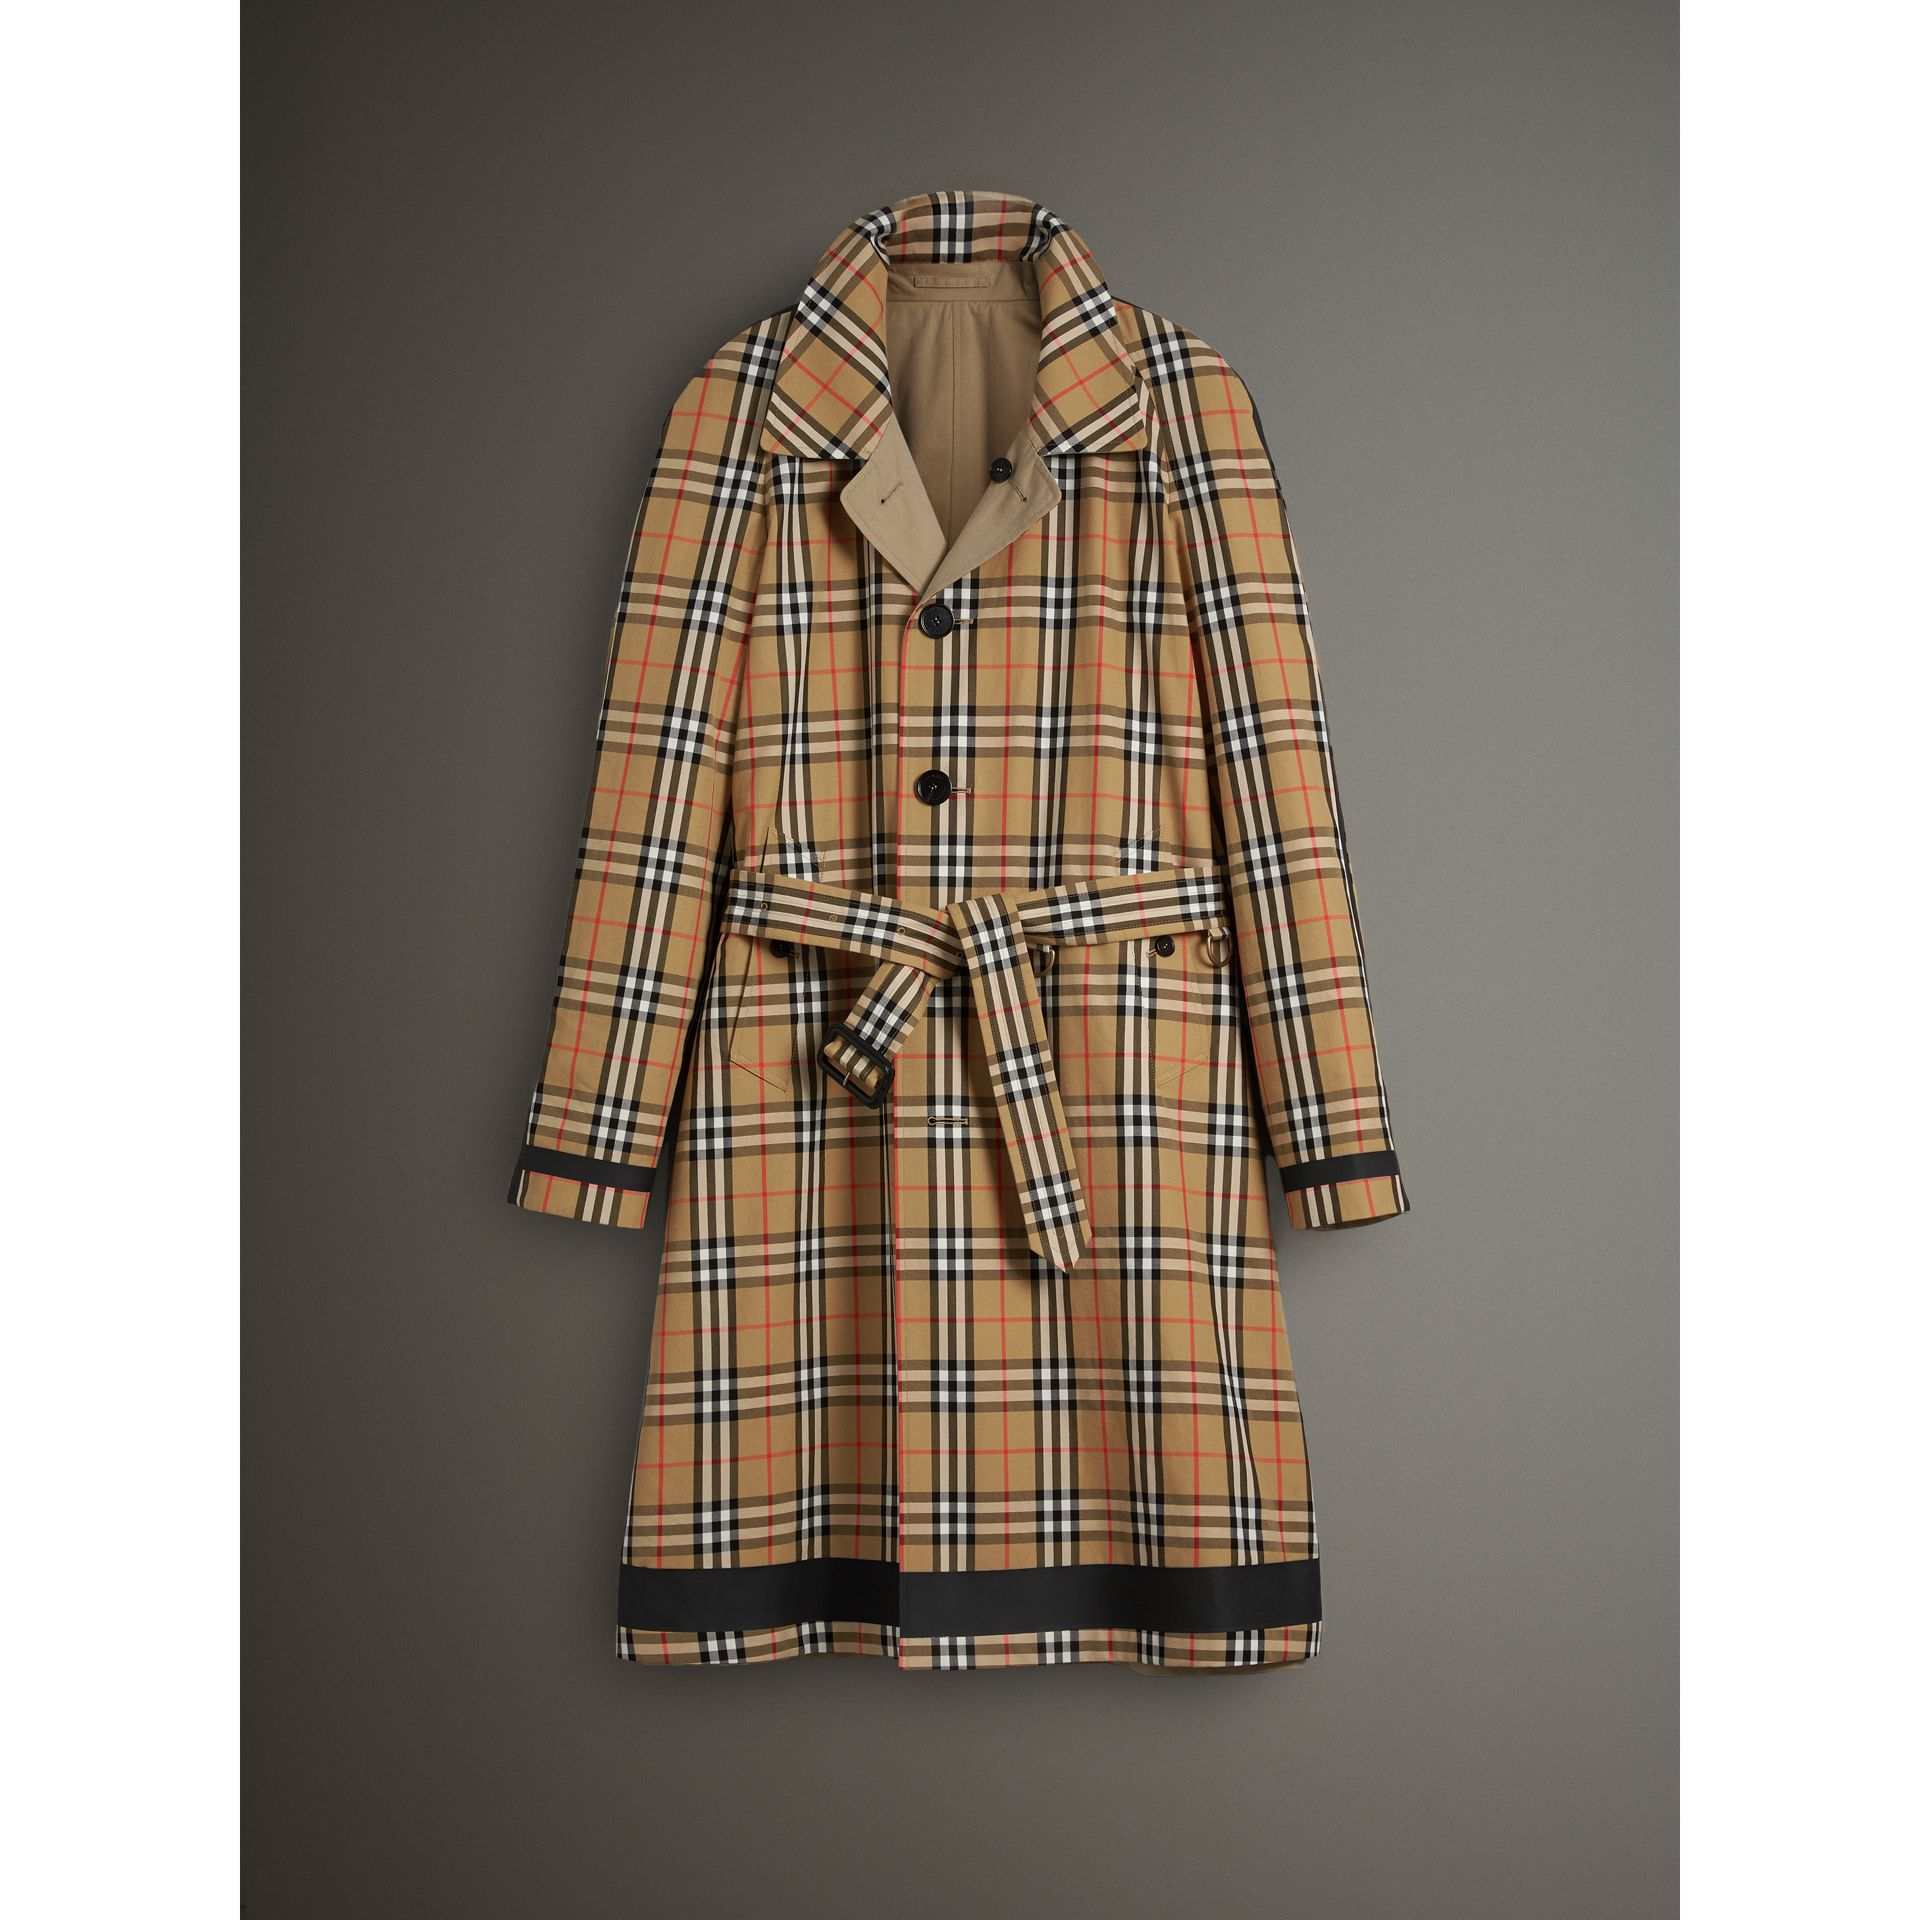 Paletot réversible en gabardine à motif Vintage check (Jaune Antique) - Homme | Burberry - photo de la galerie 4